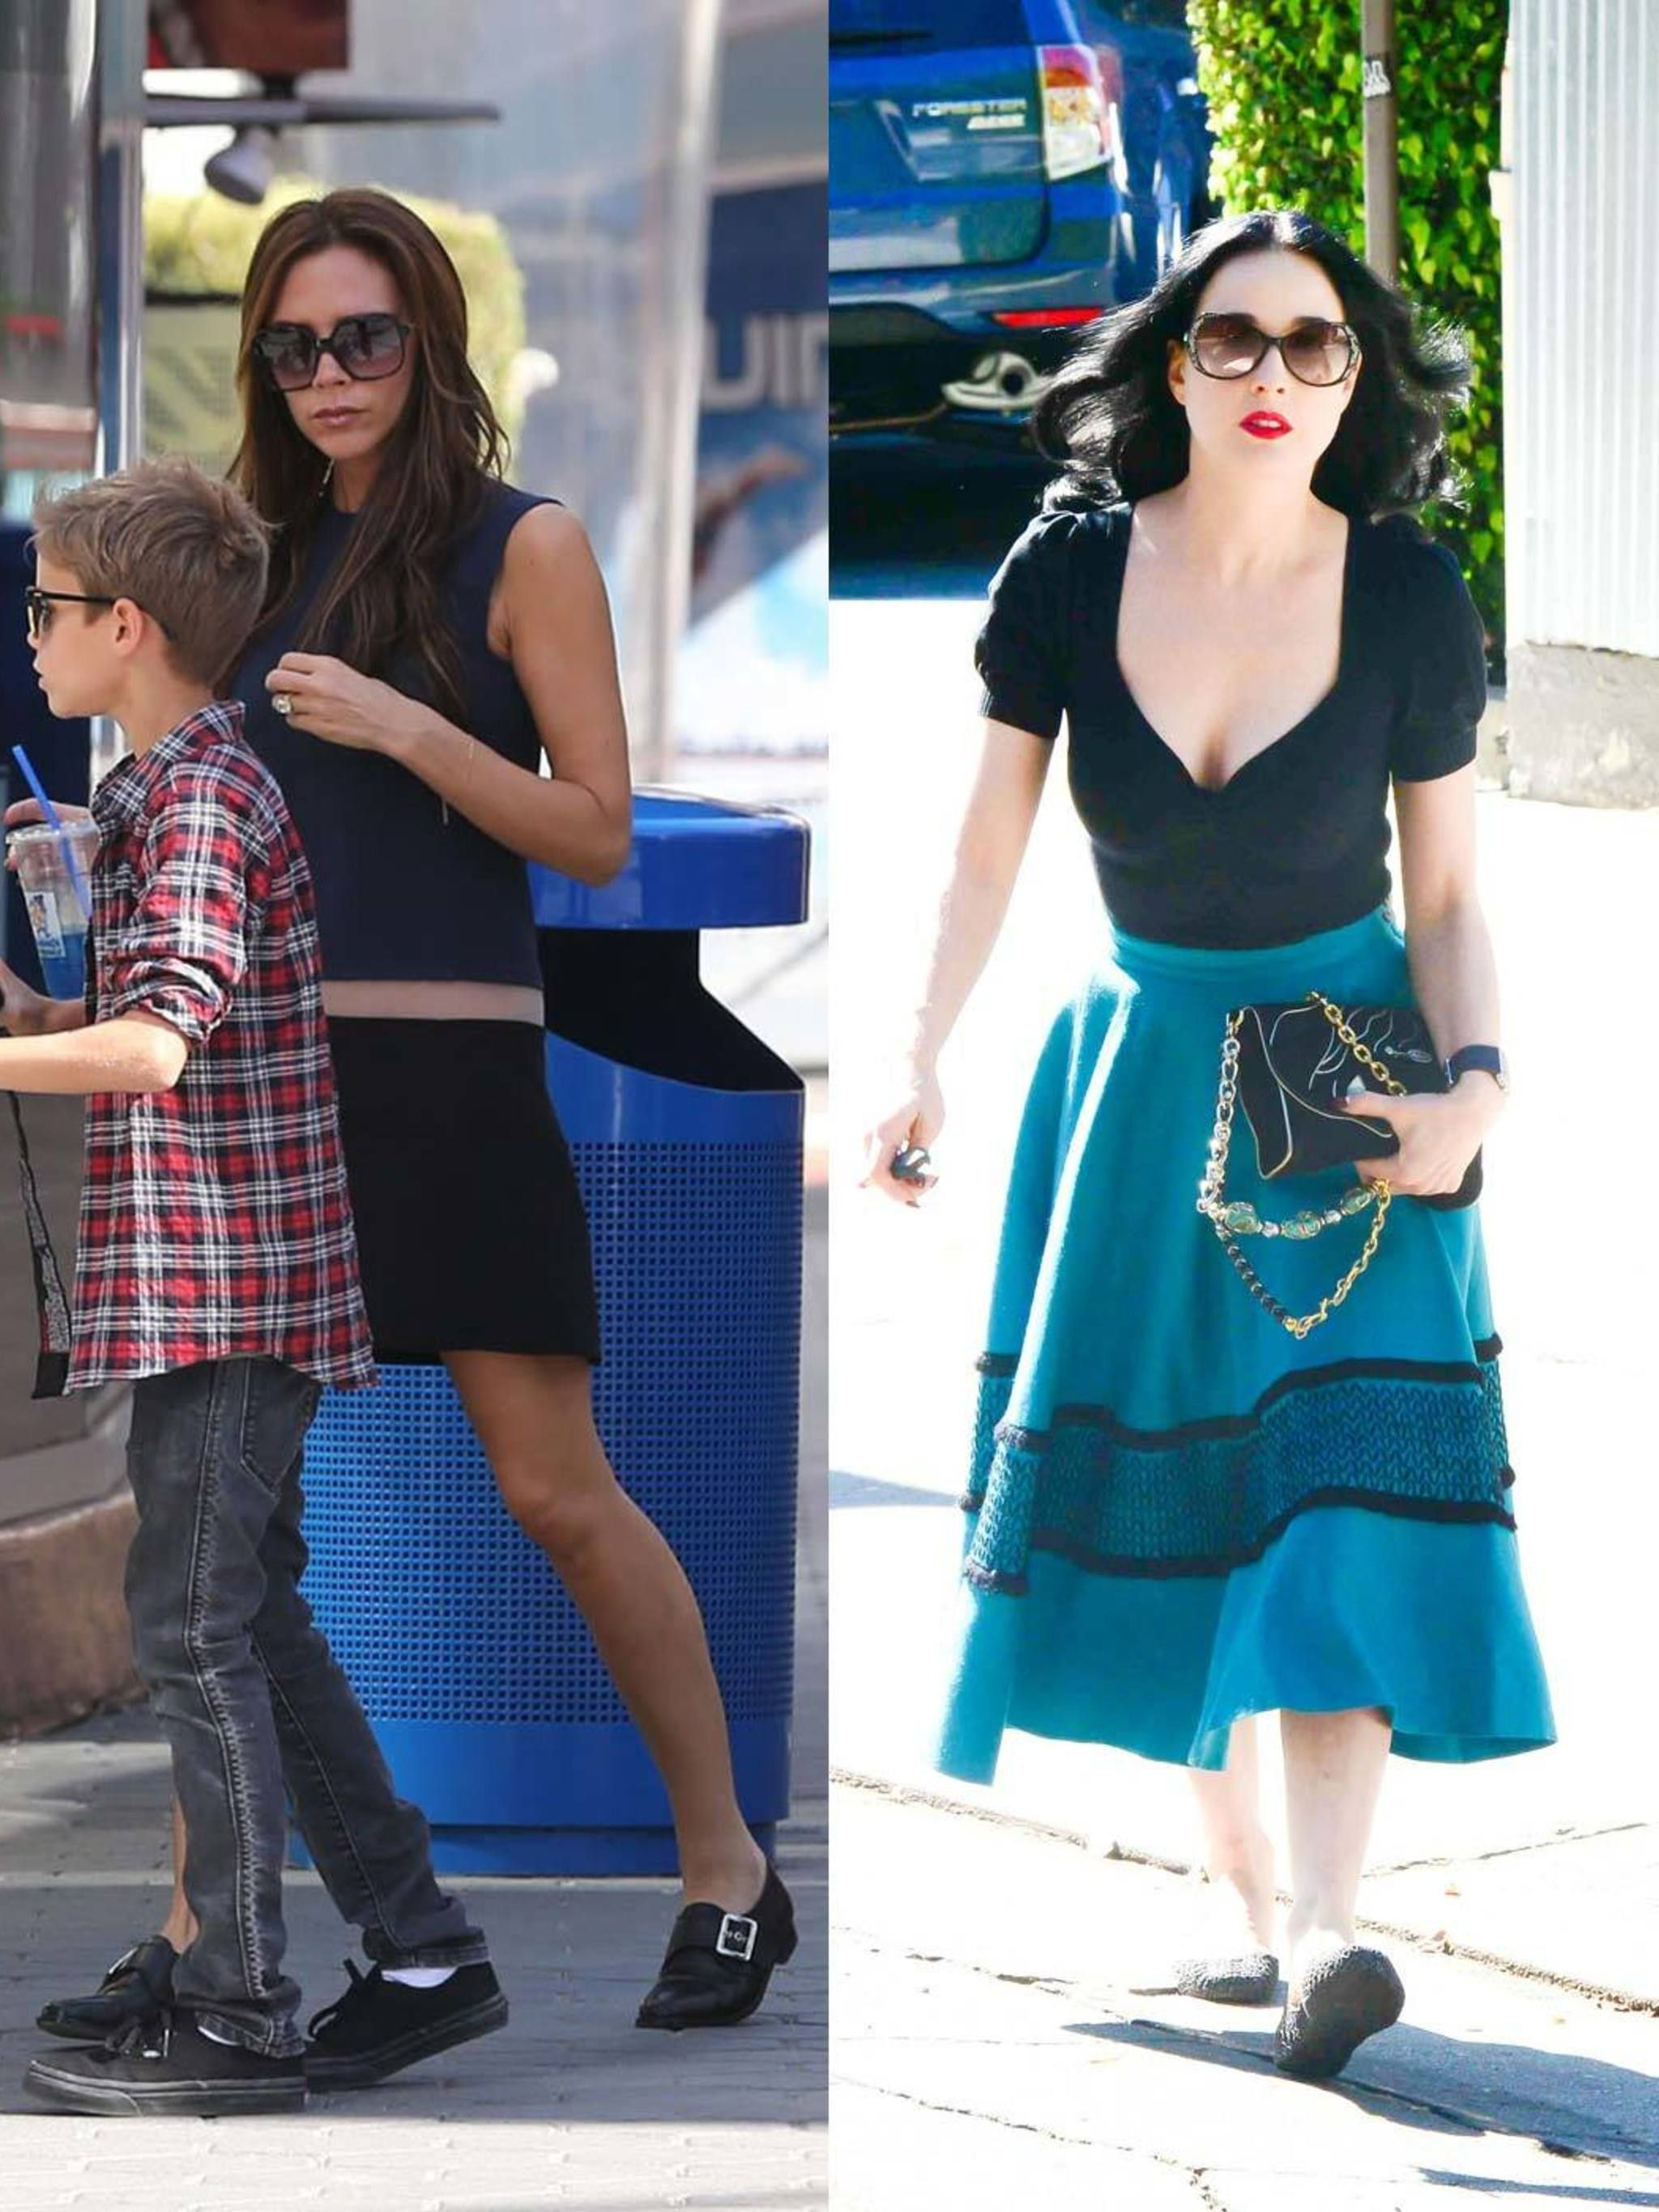 Victoria Beckham And Dita Von Teese Both Wear Flat Shoes Elle Uk